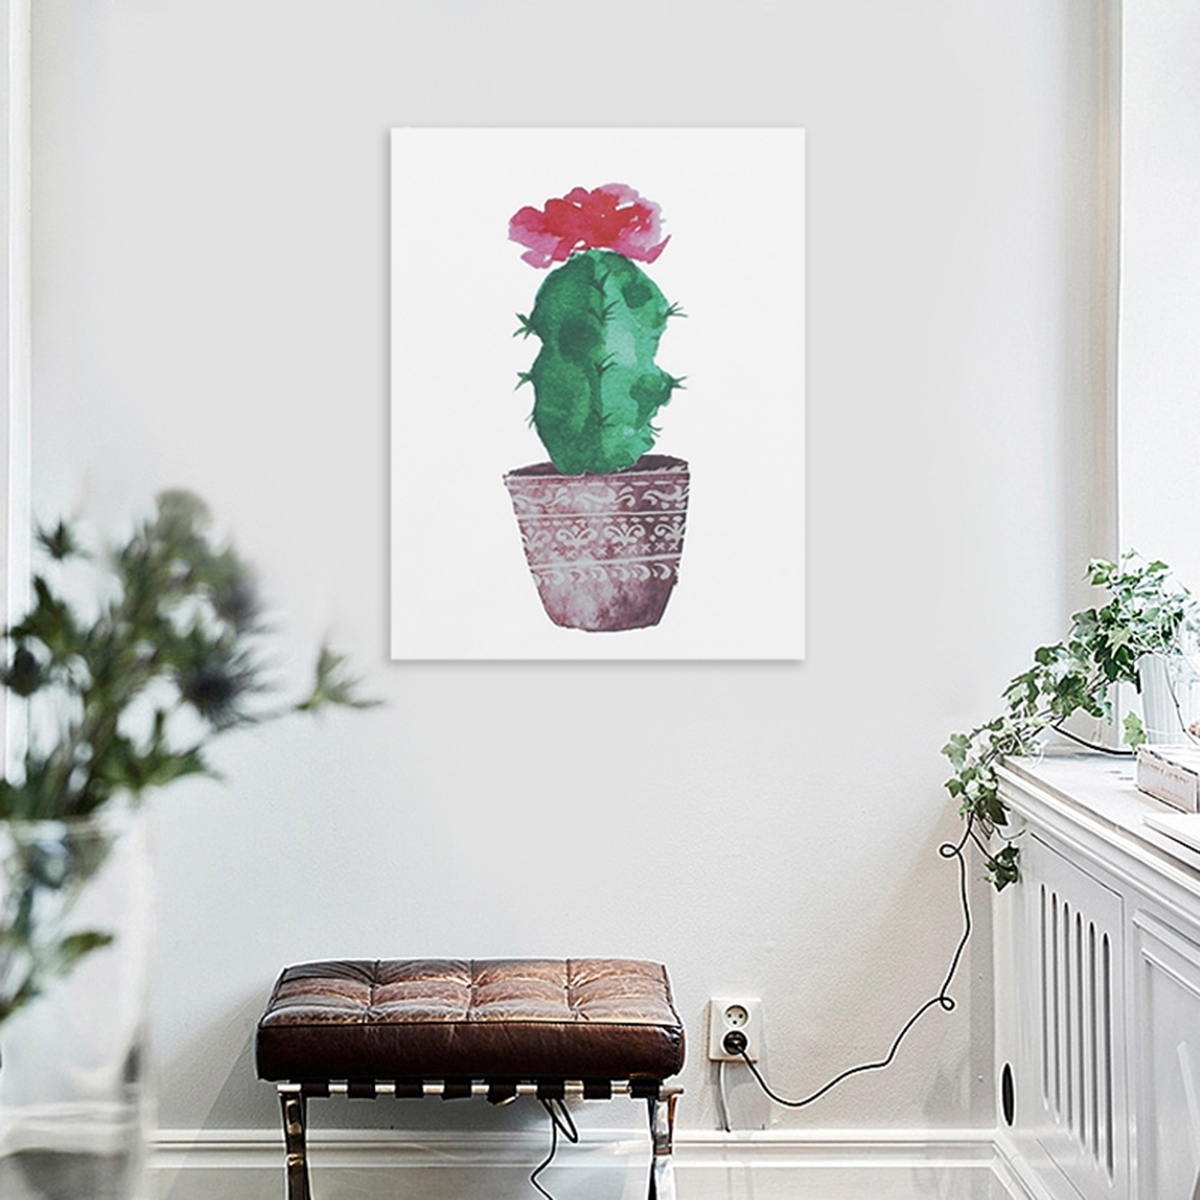 Watercolor Canvas Cactus Painting Print Picture Modern Home Wall Art Intended For Recent Cactus Wall Art (View 19 of 20)